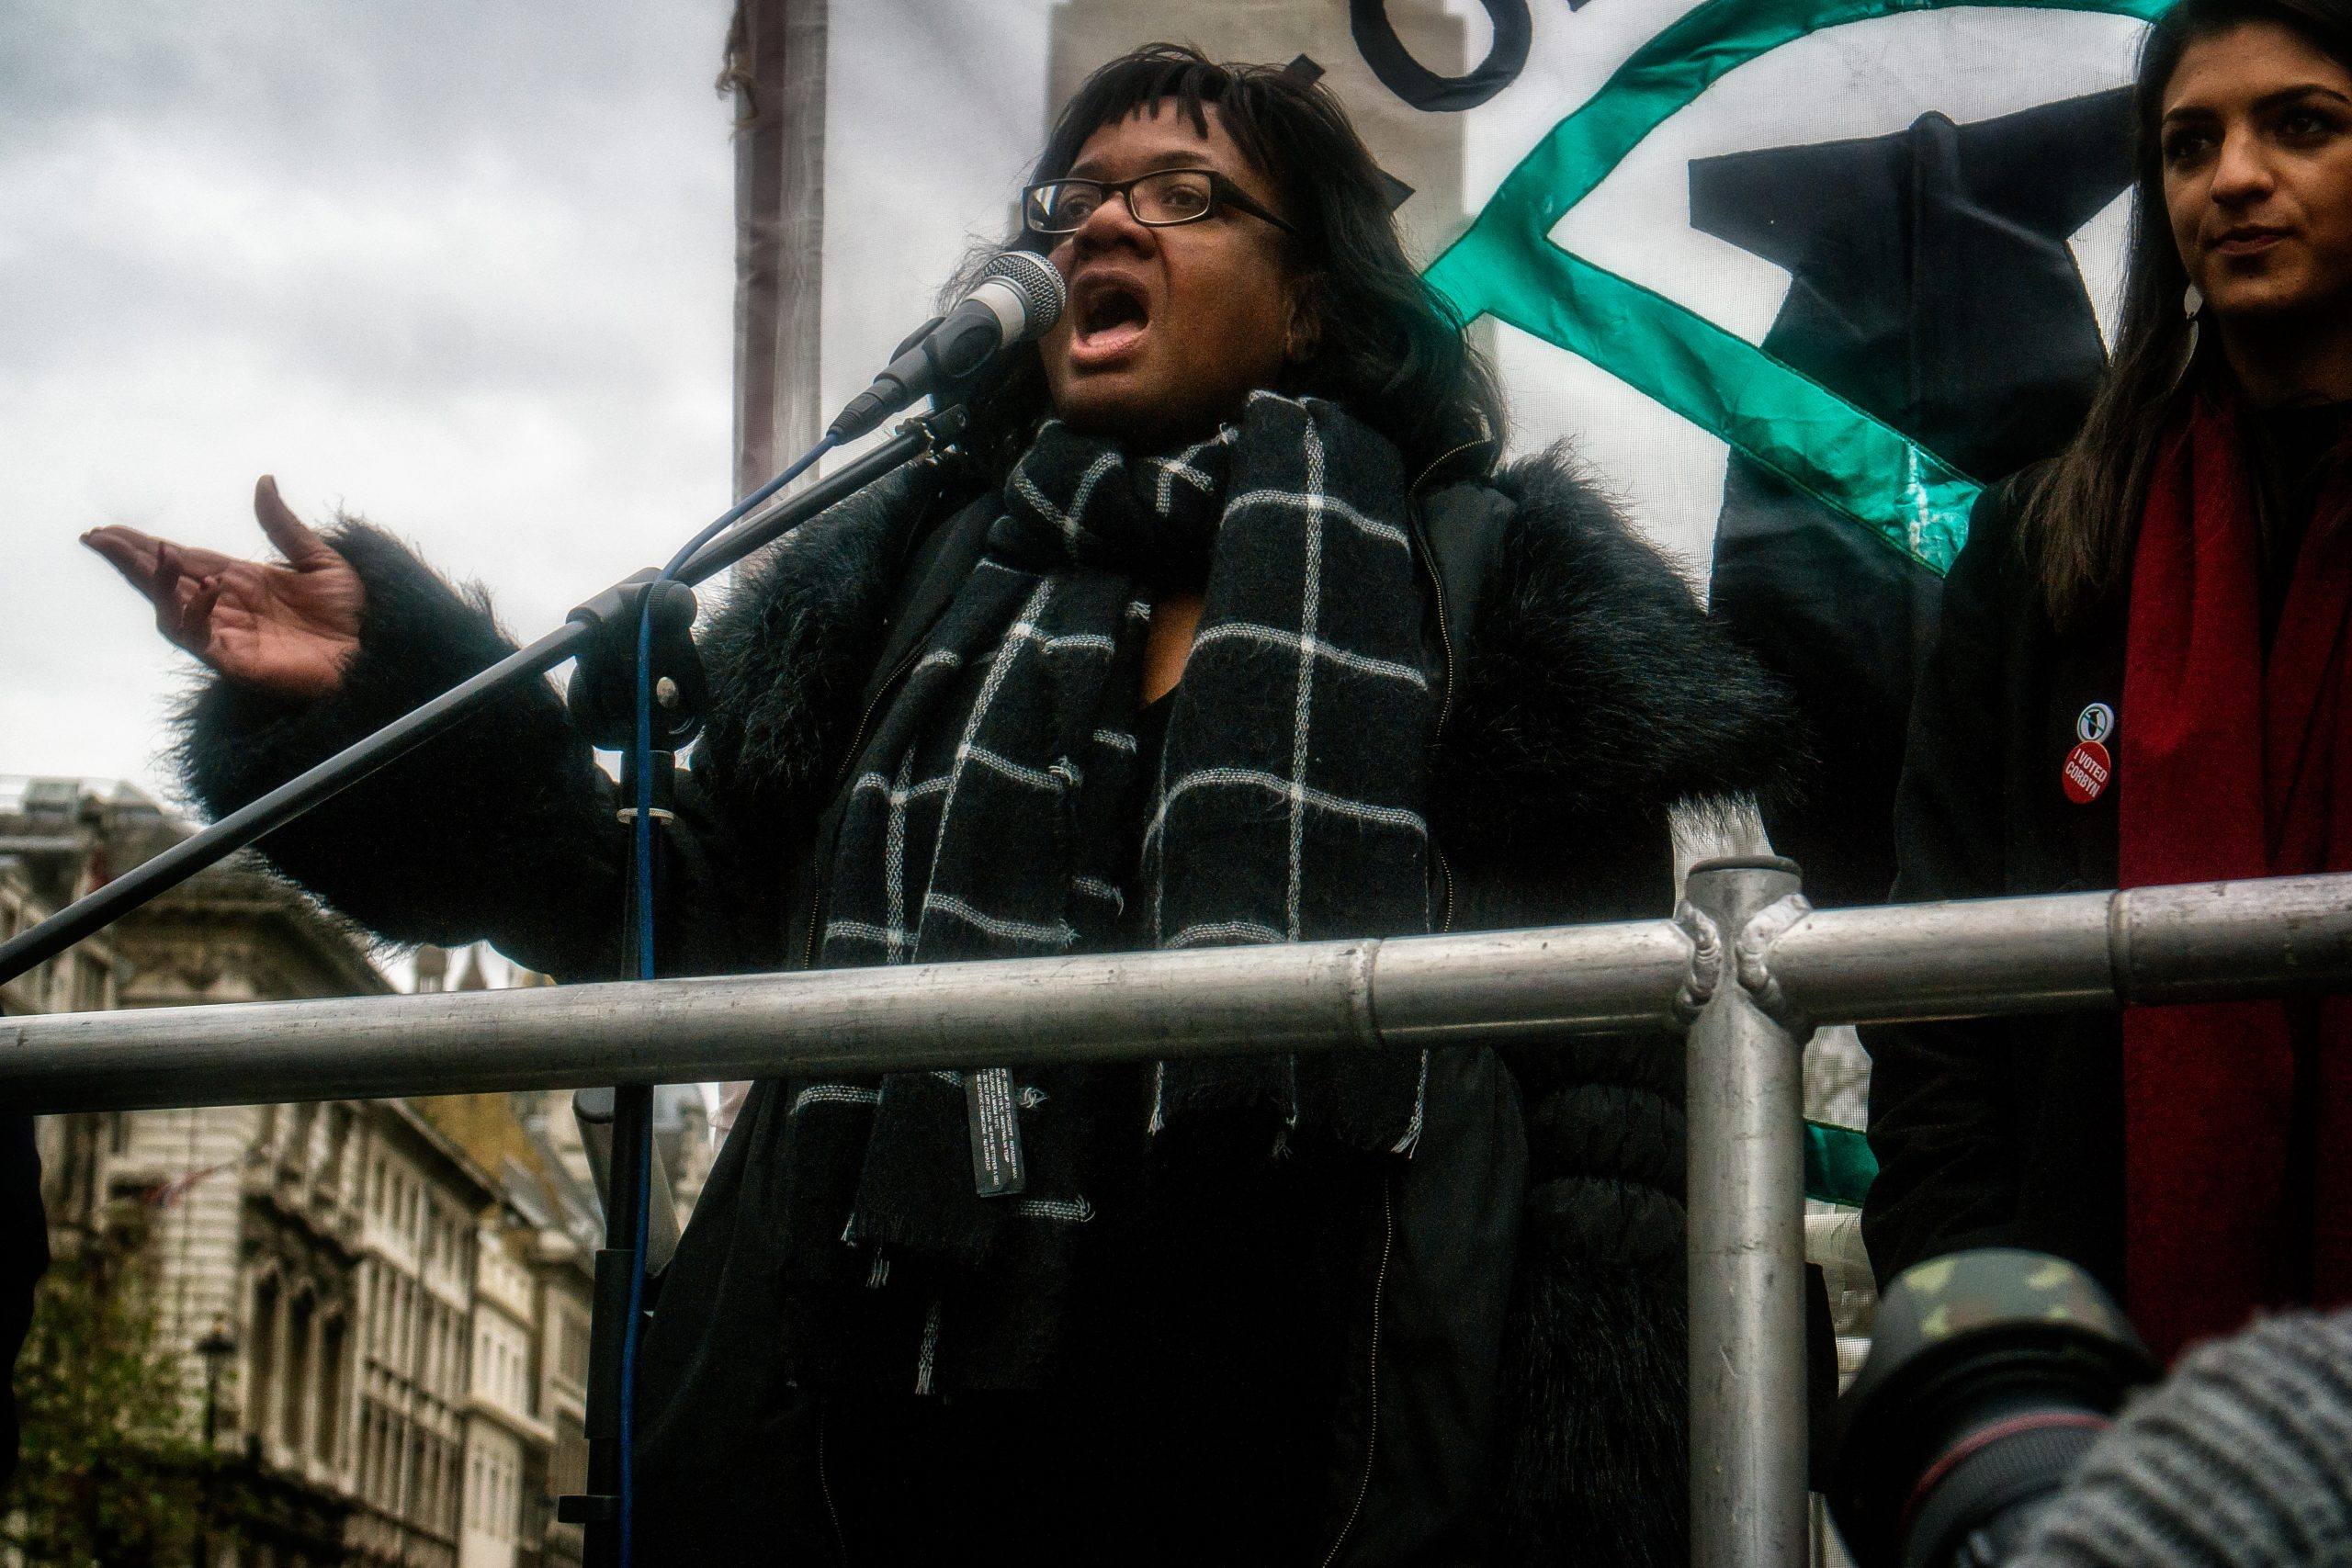 Diane Abbott at 'Don't Bomb Syria' Protest